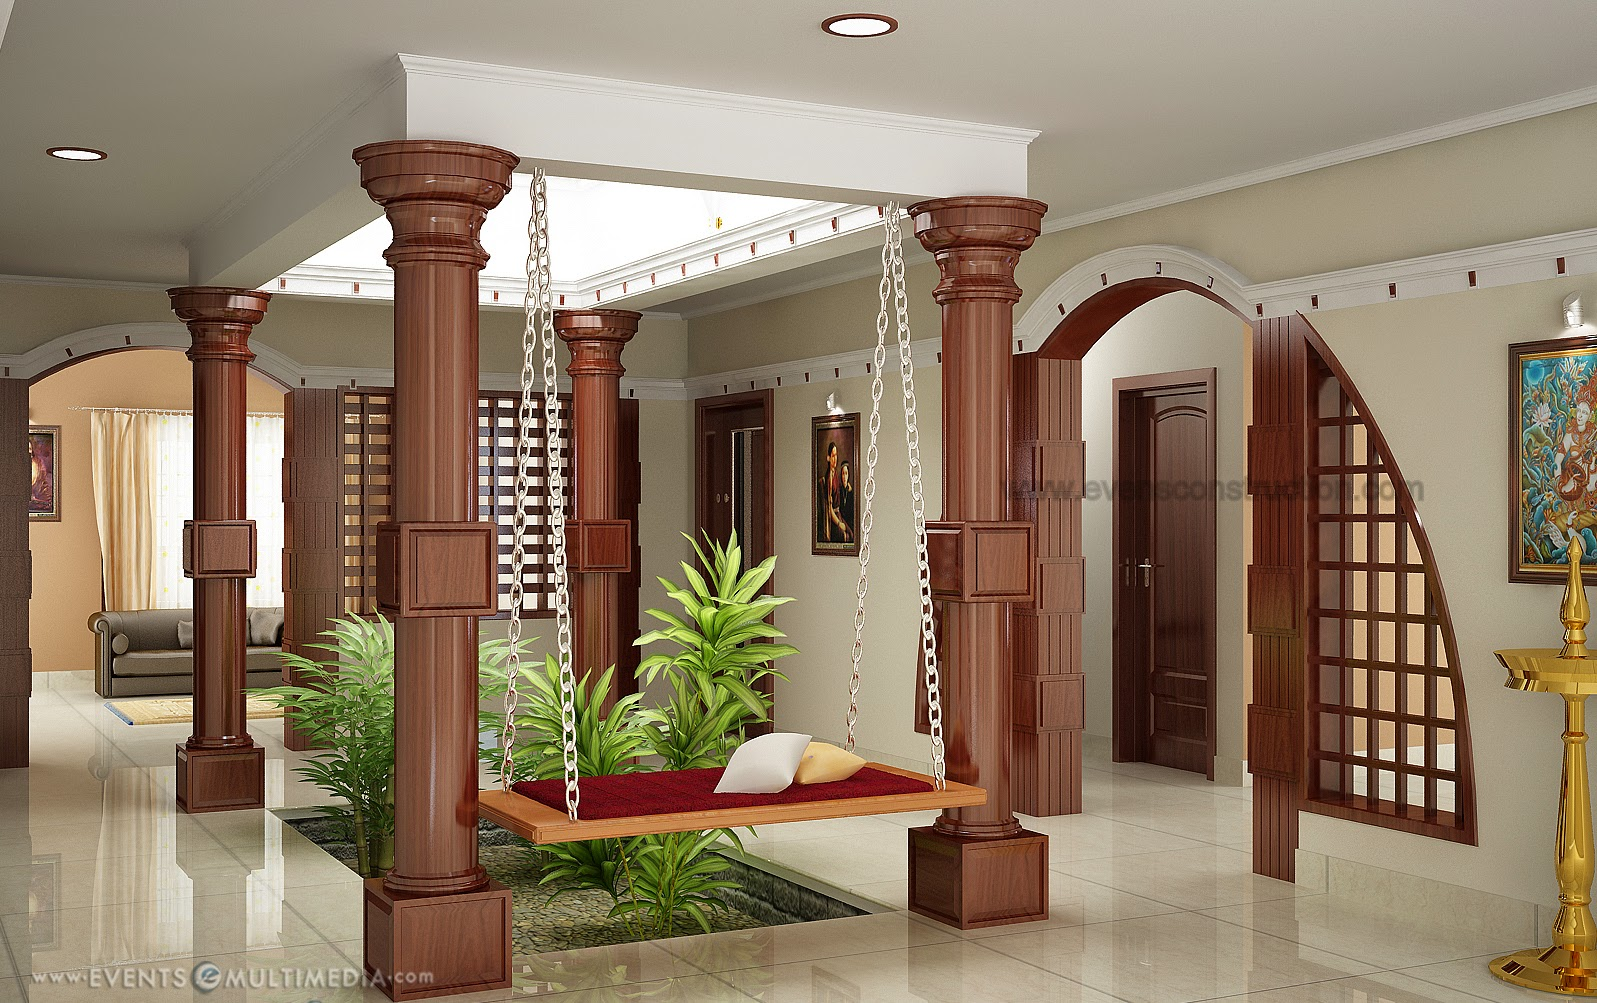 1000 images about houses on pinterest house design for Kerala interior designs